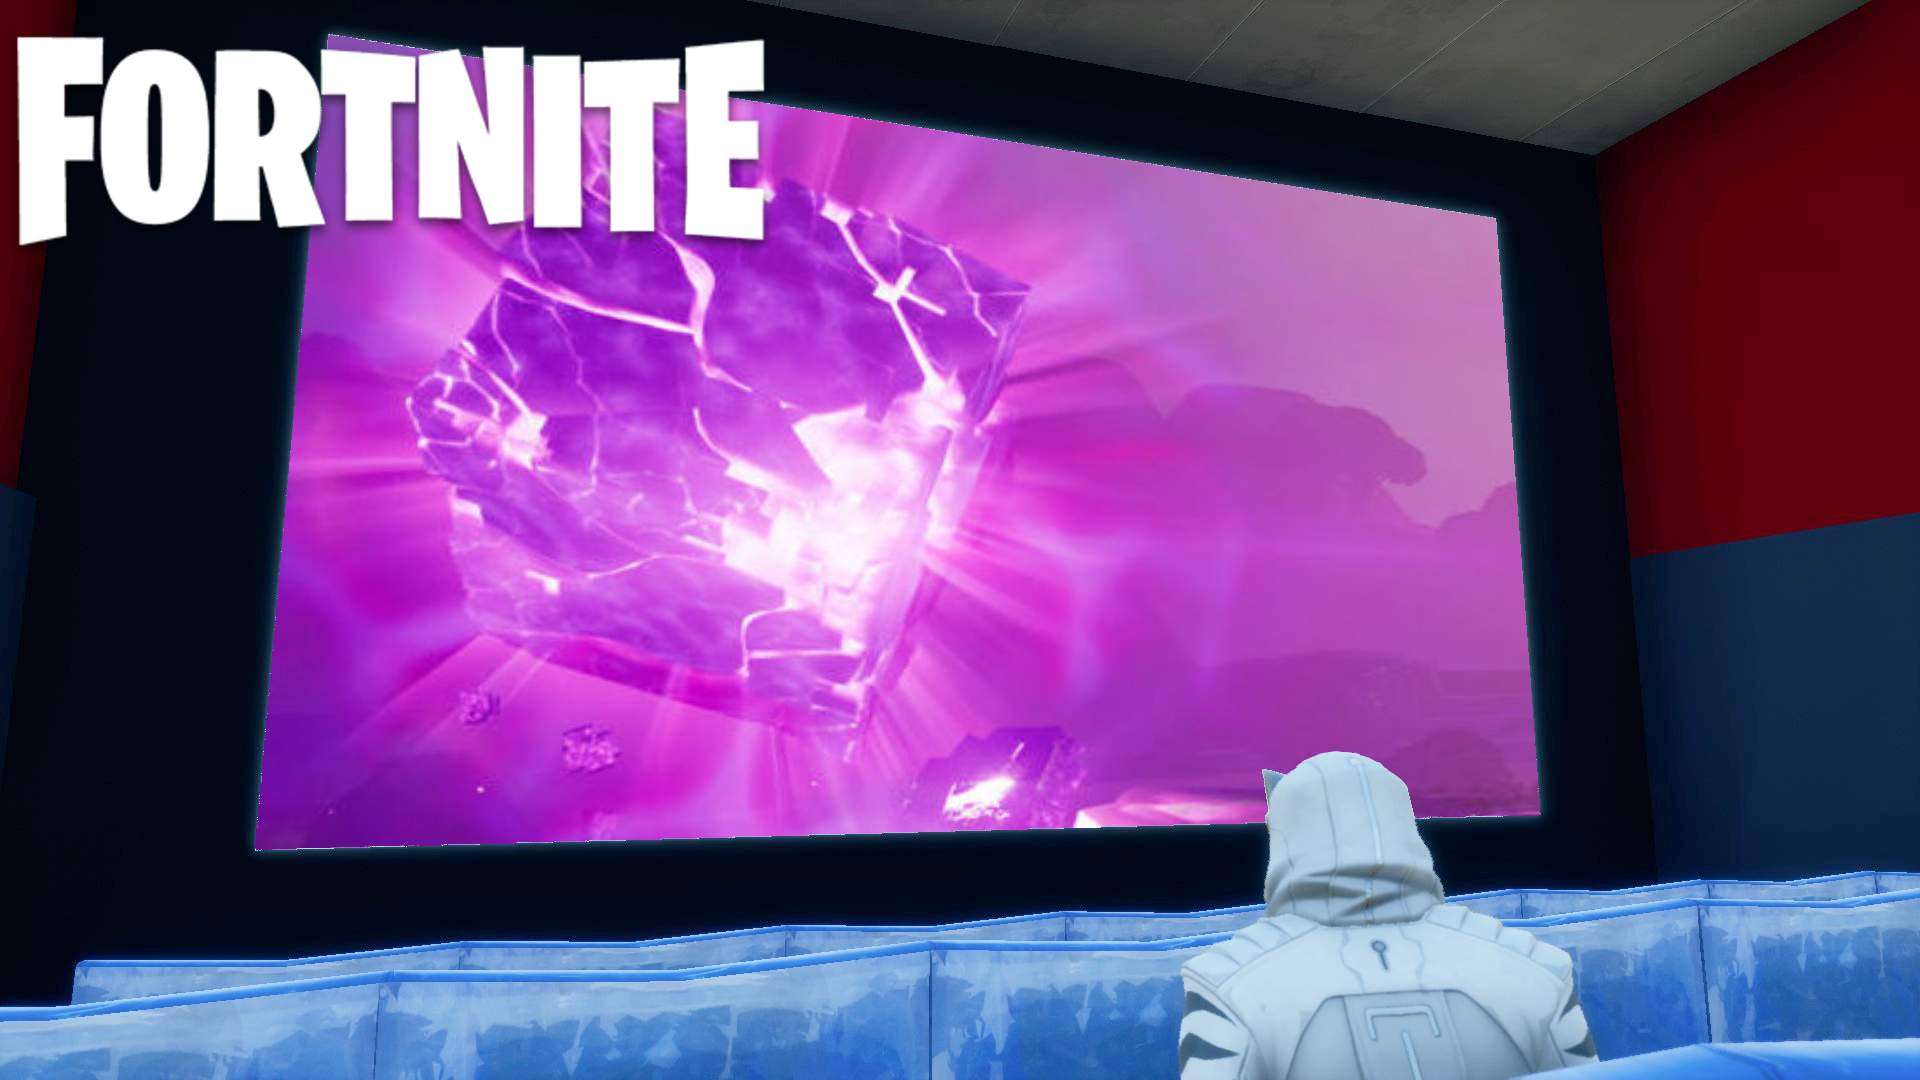 FORTNITE EVENTS MOVIE